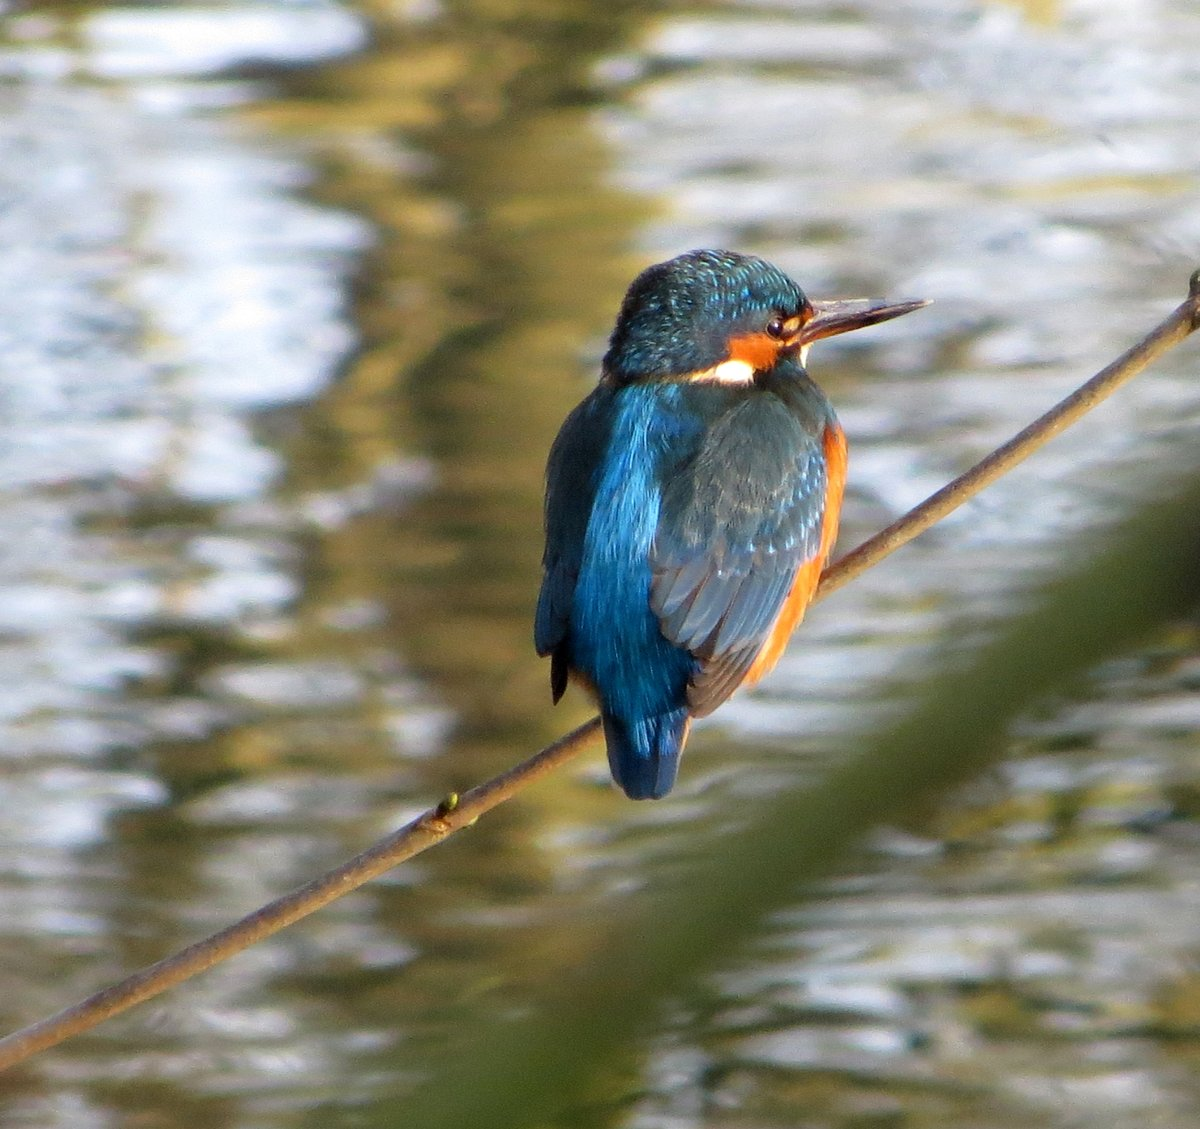 a lunchtime walk today around The Dingle in Porthill. I spend more time watching the kingfisher than I do walking ! Such a beautiful bird to watch.  #kingfisher #nature #staylocal #staffwildlife #winterwatch #RSPB #birdwatching